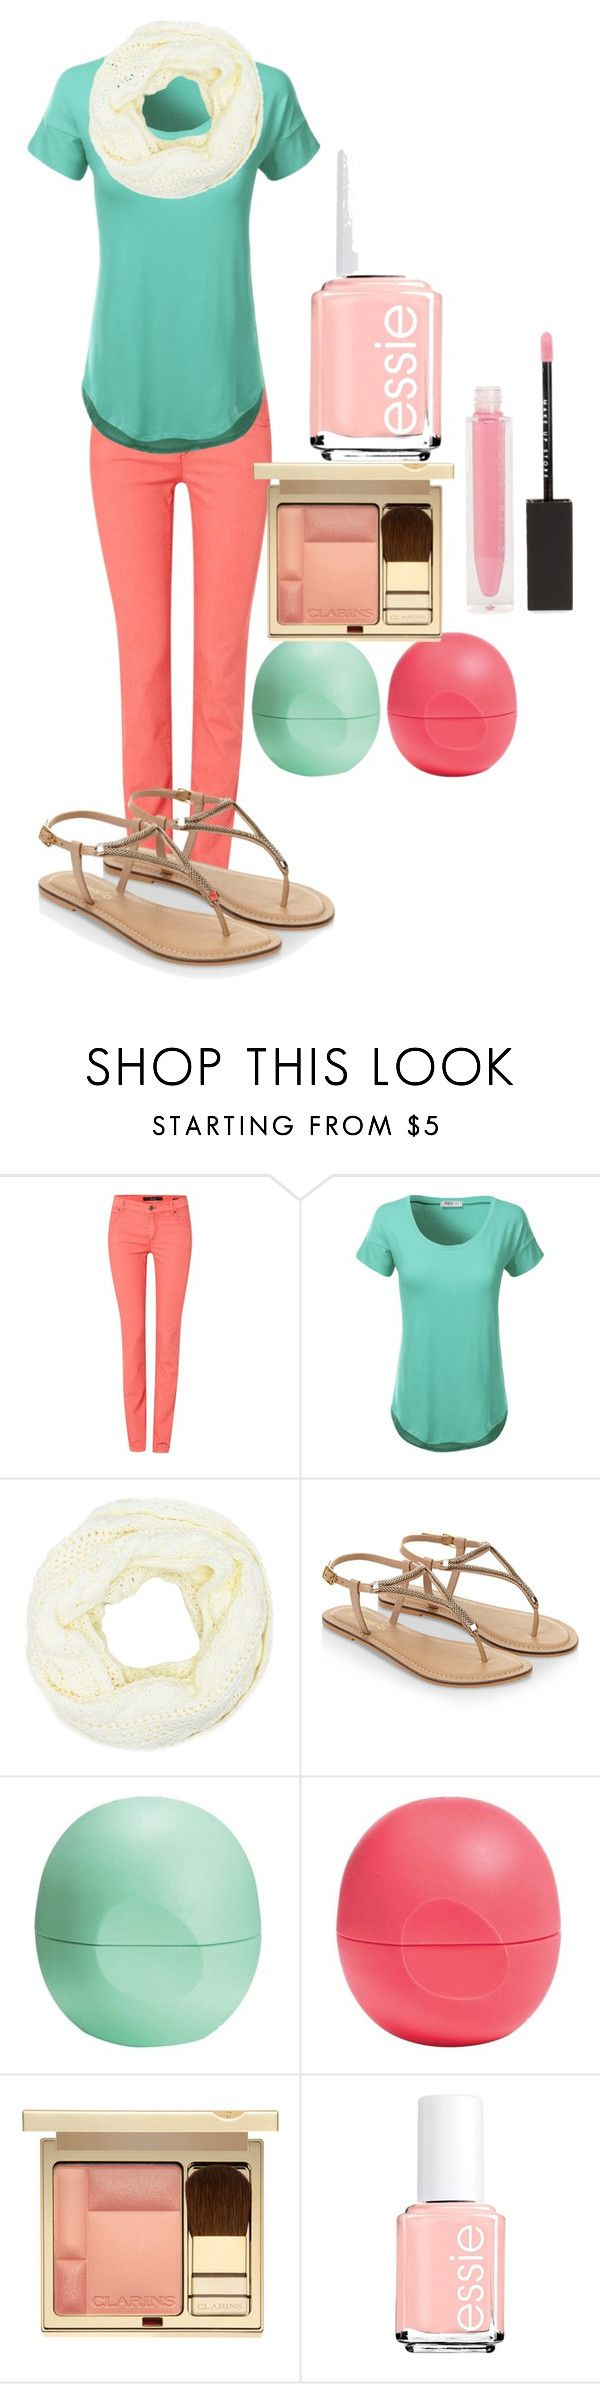 """""""summer days"""" by kylibuggjr on Polyvore featuring Oui, J.TOMSON, Charlotte Russe, Accessorize, Eos, Clarins, Essie and MAKE UP STORE"""